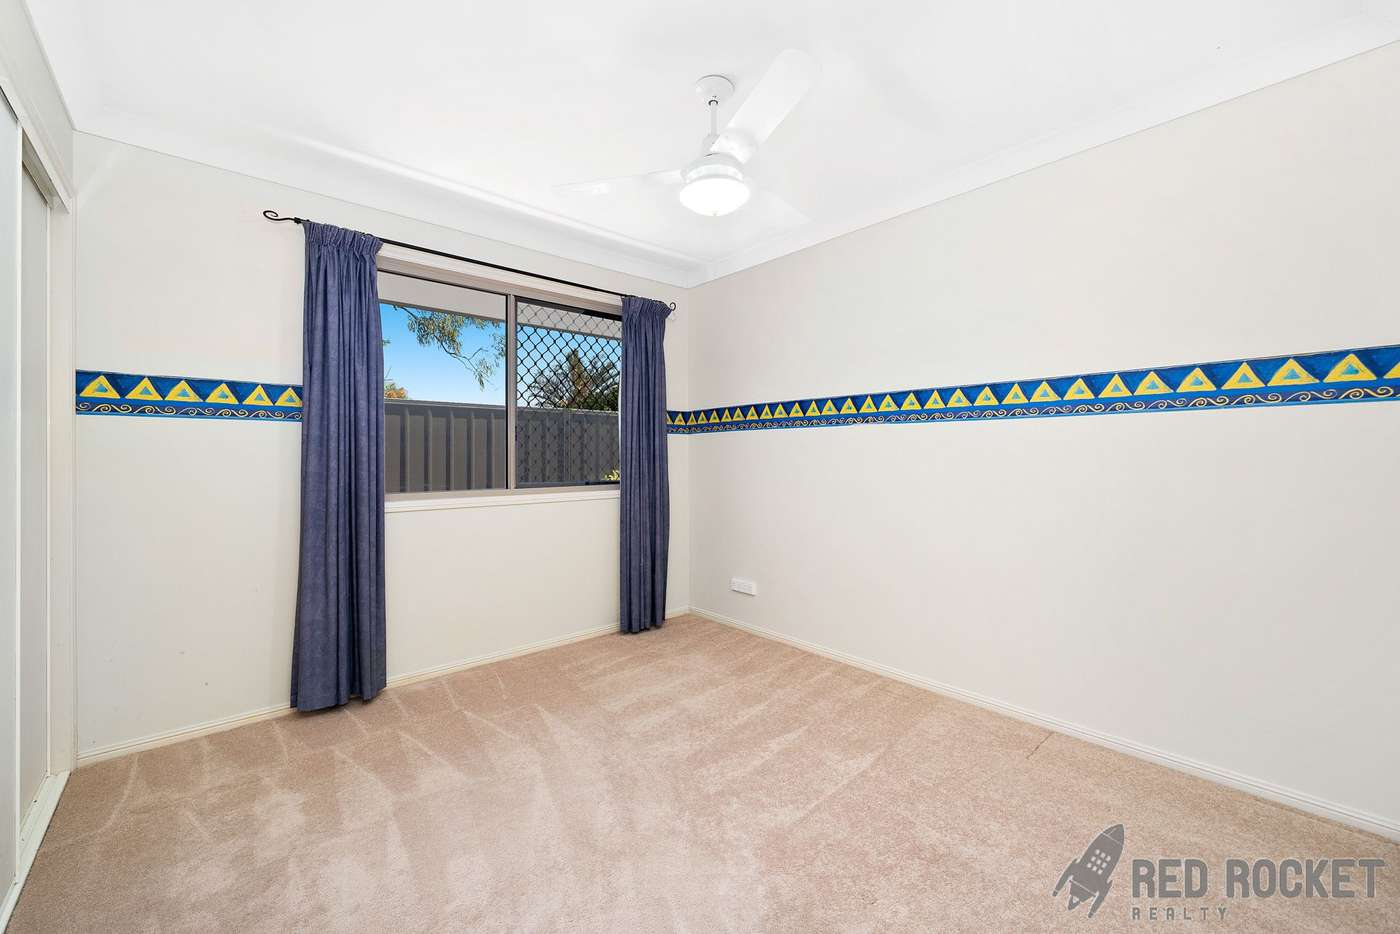 Seventh view of Homely house listing, 113 Pohon Drive, Tanah Merah QLD 4128